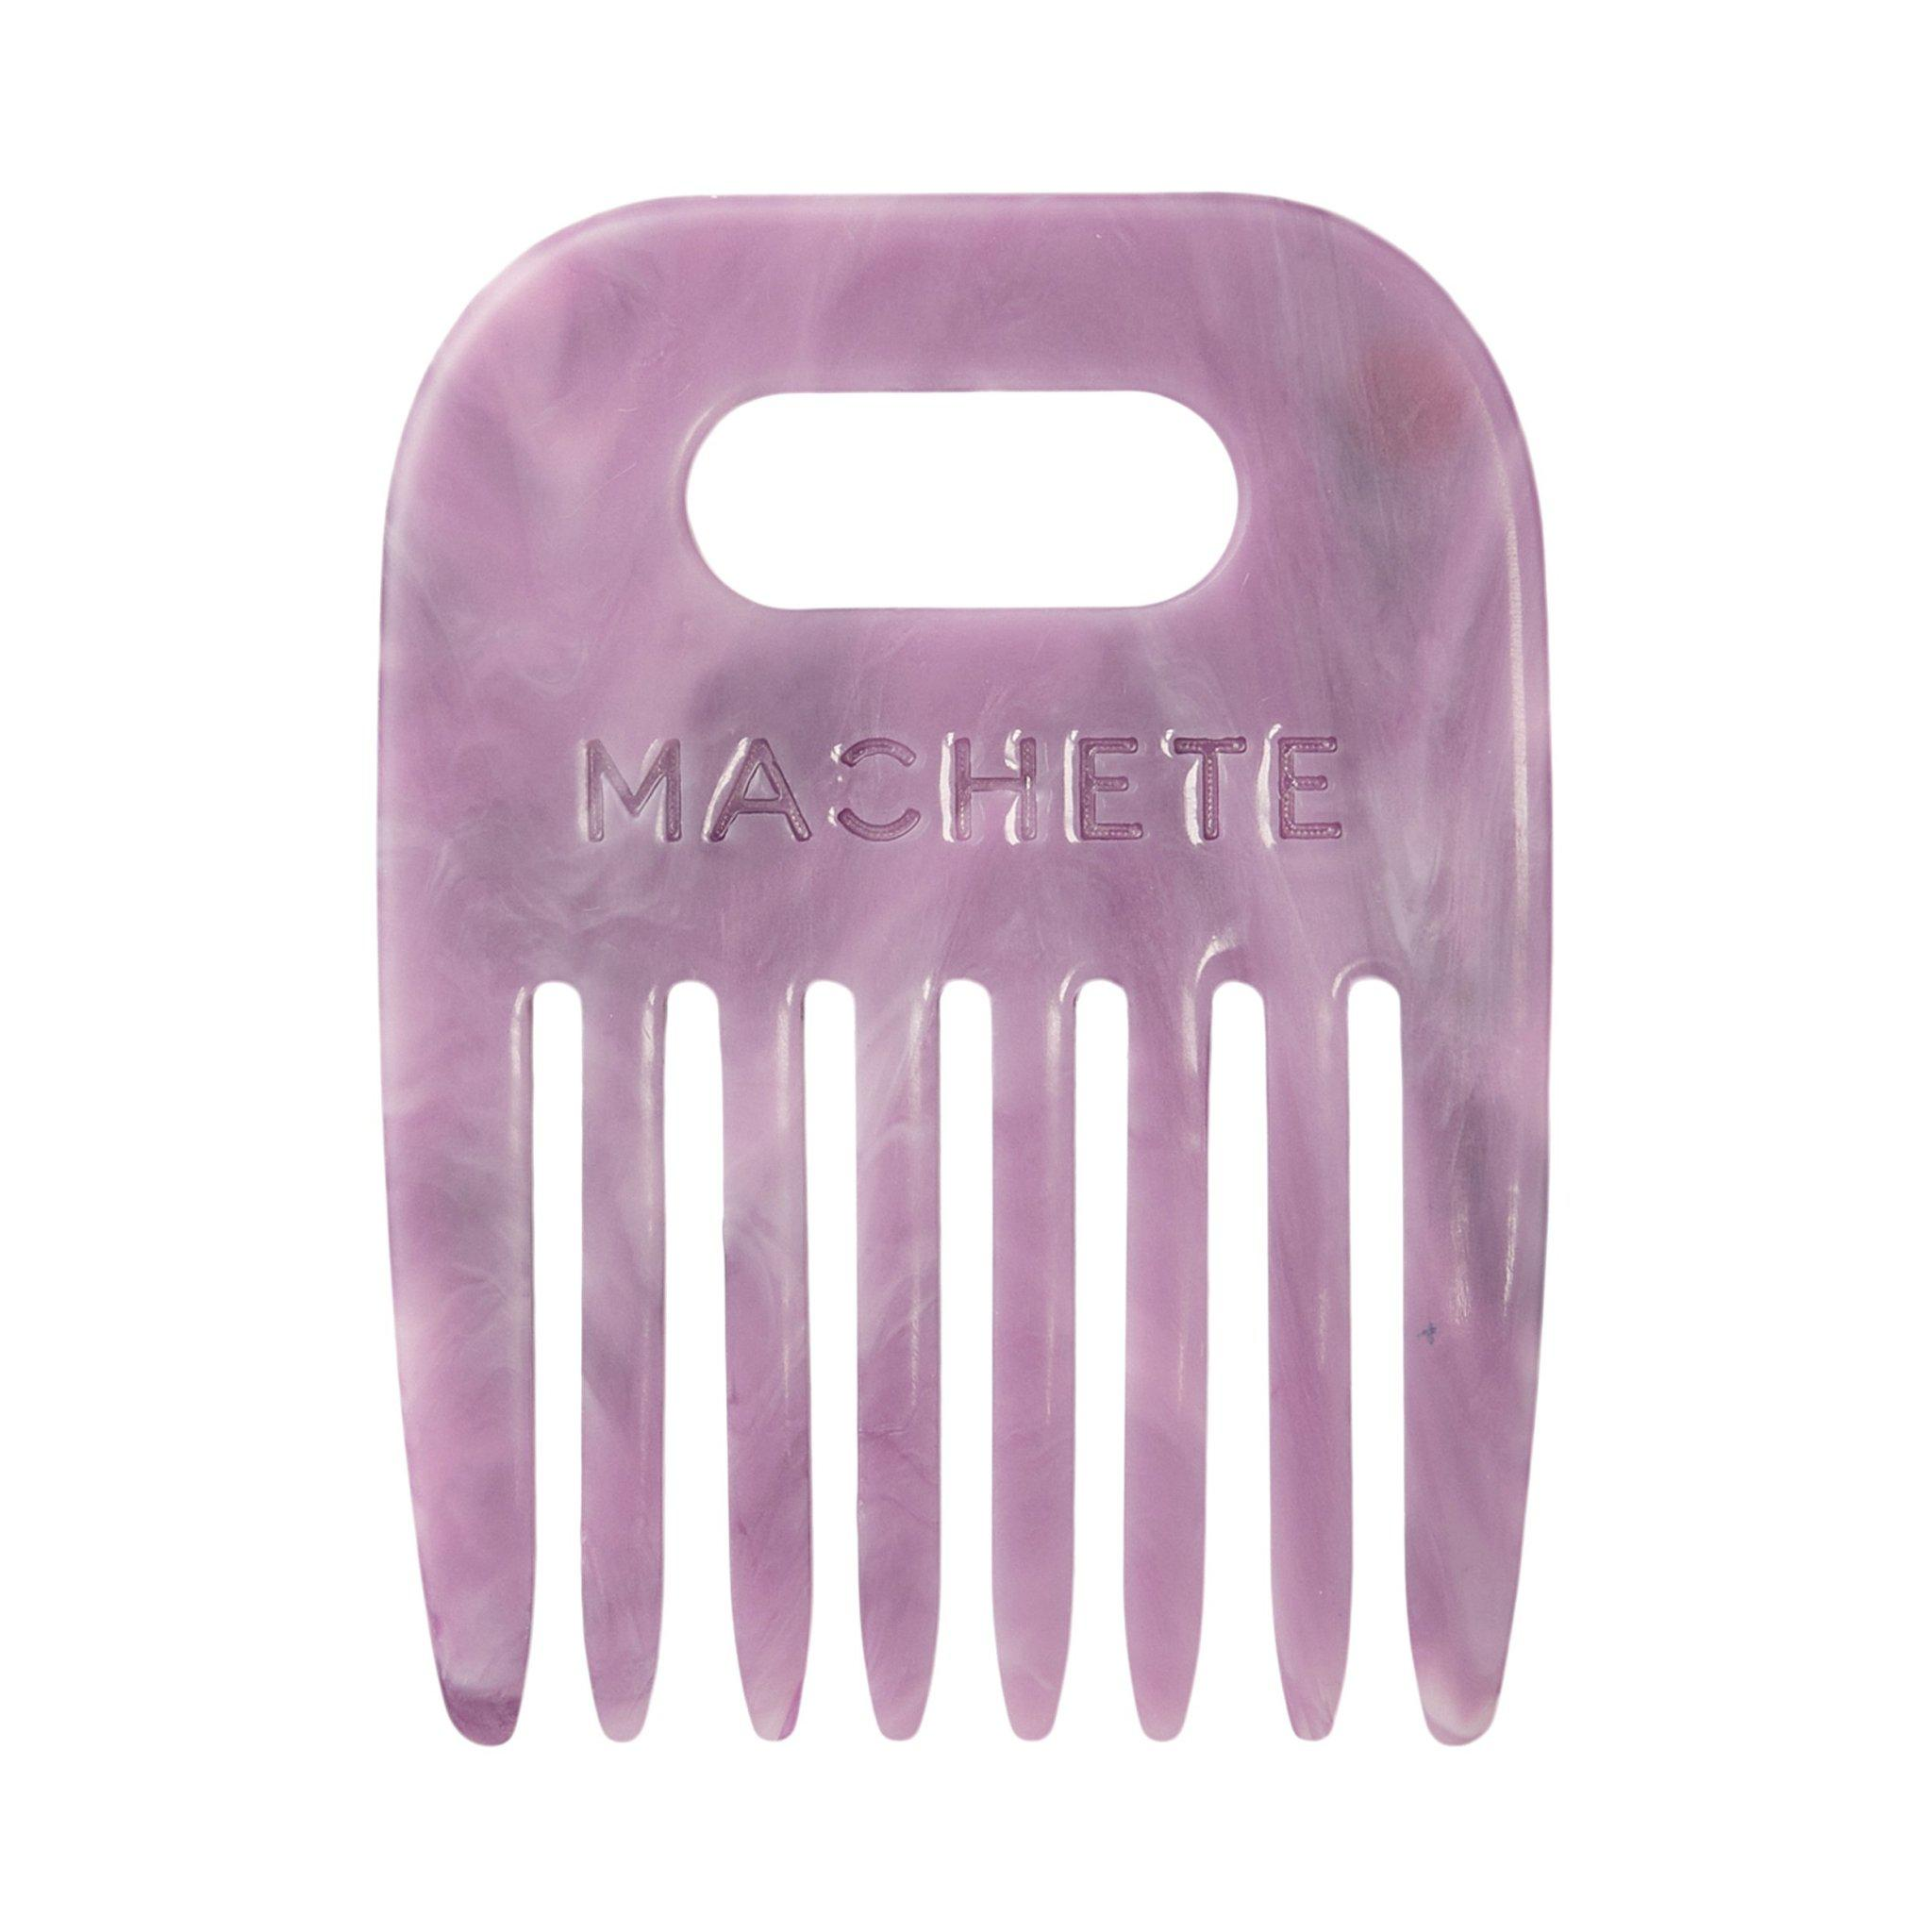 No. 4 Comb in Orchid